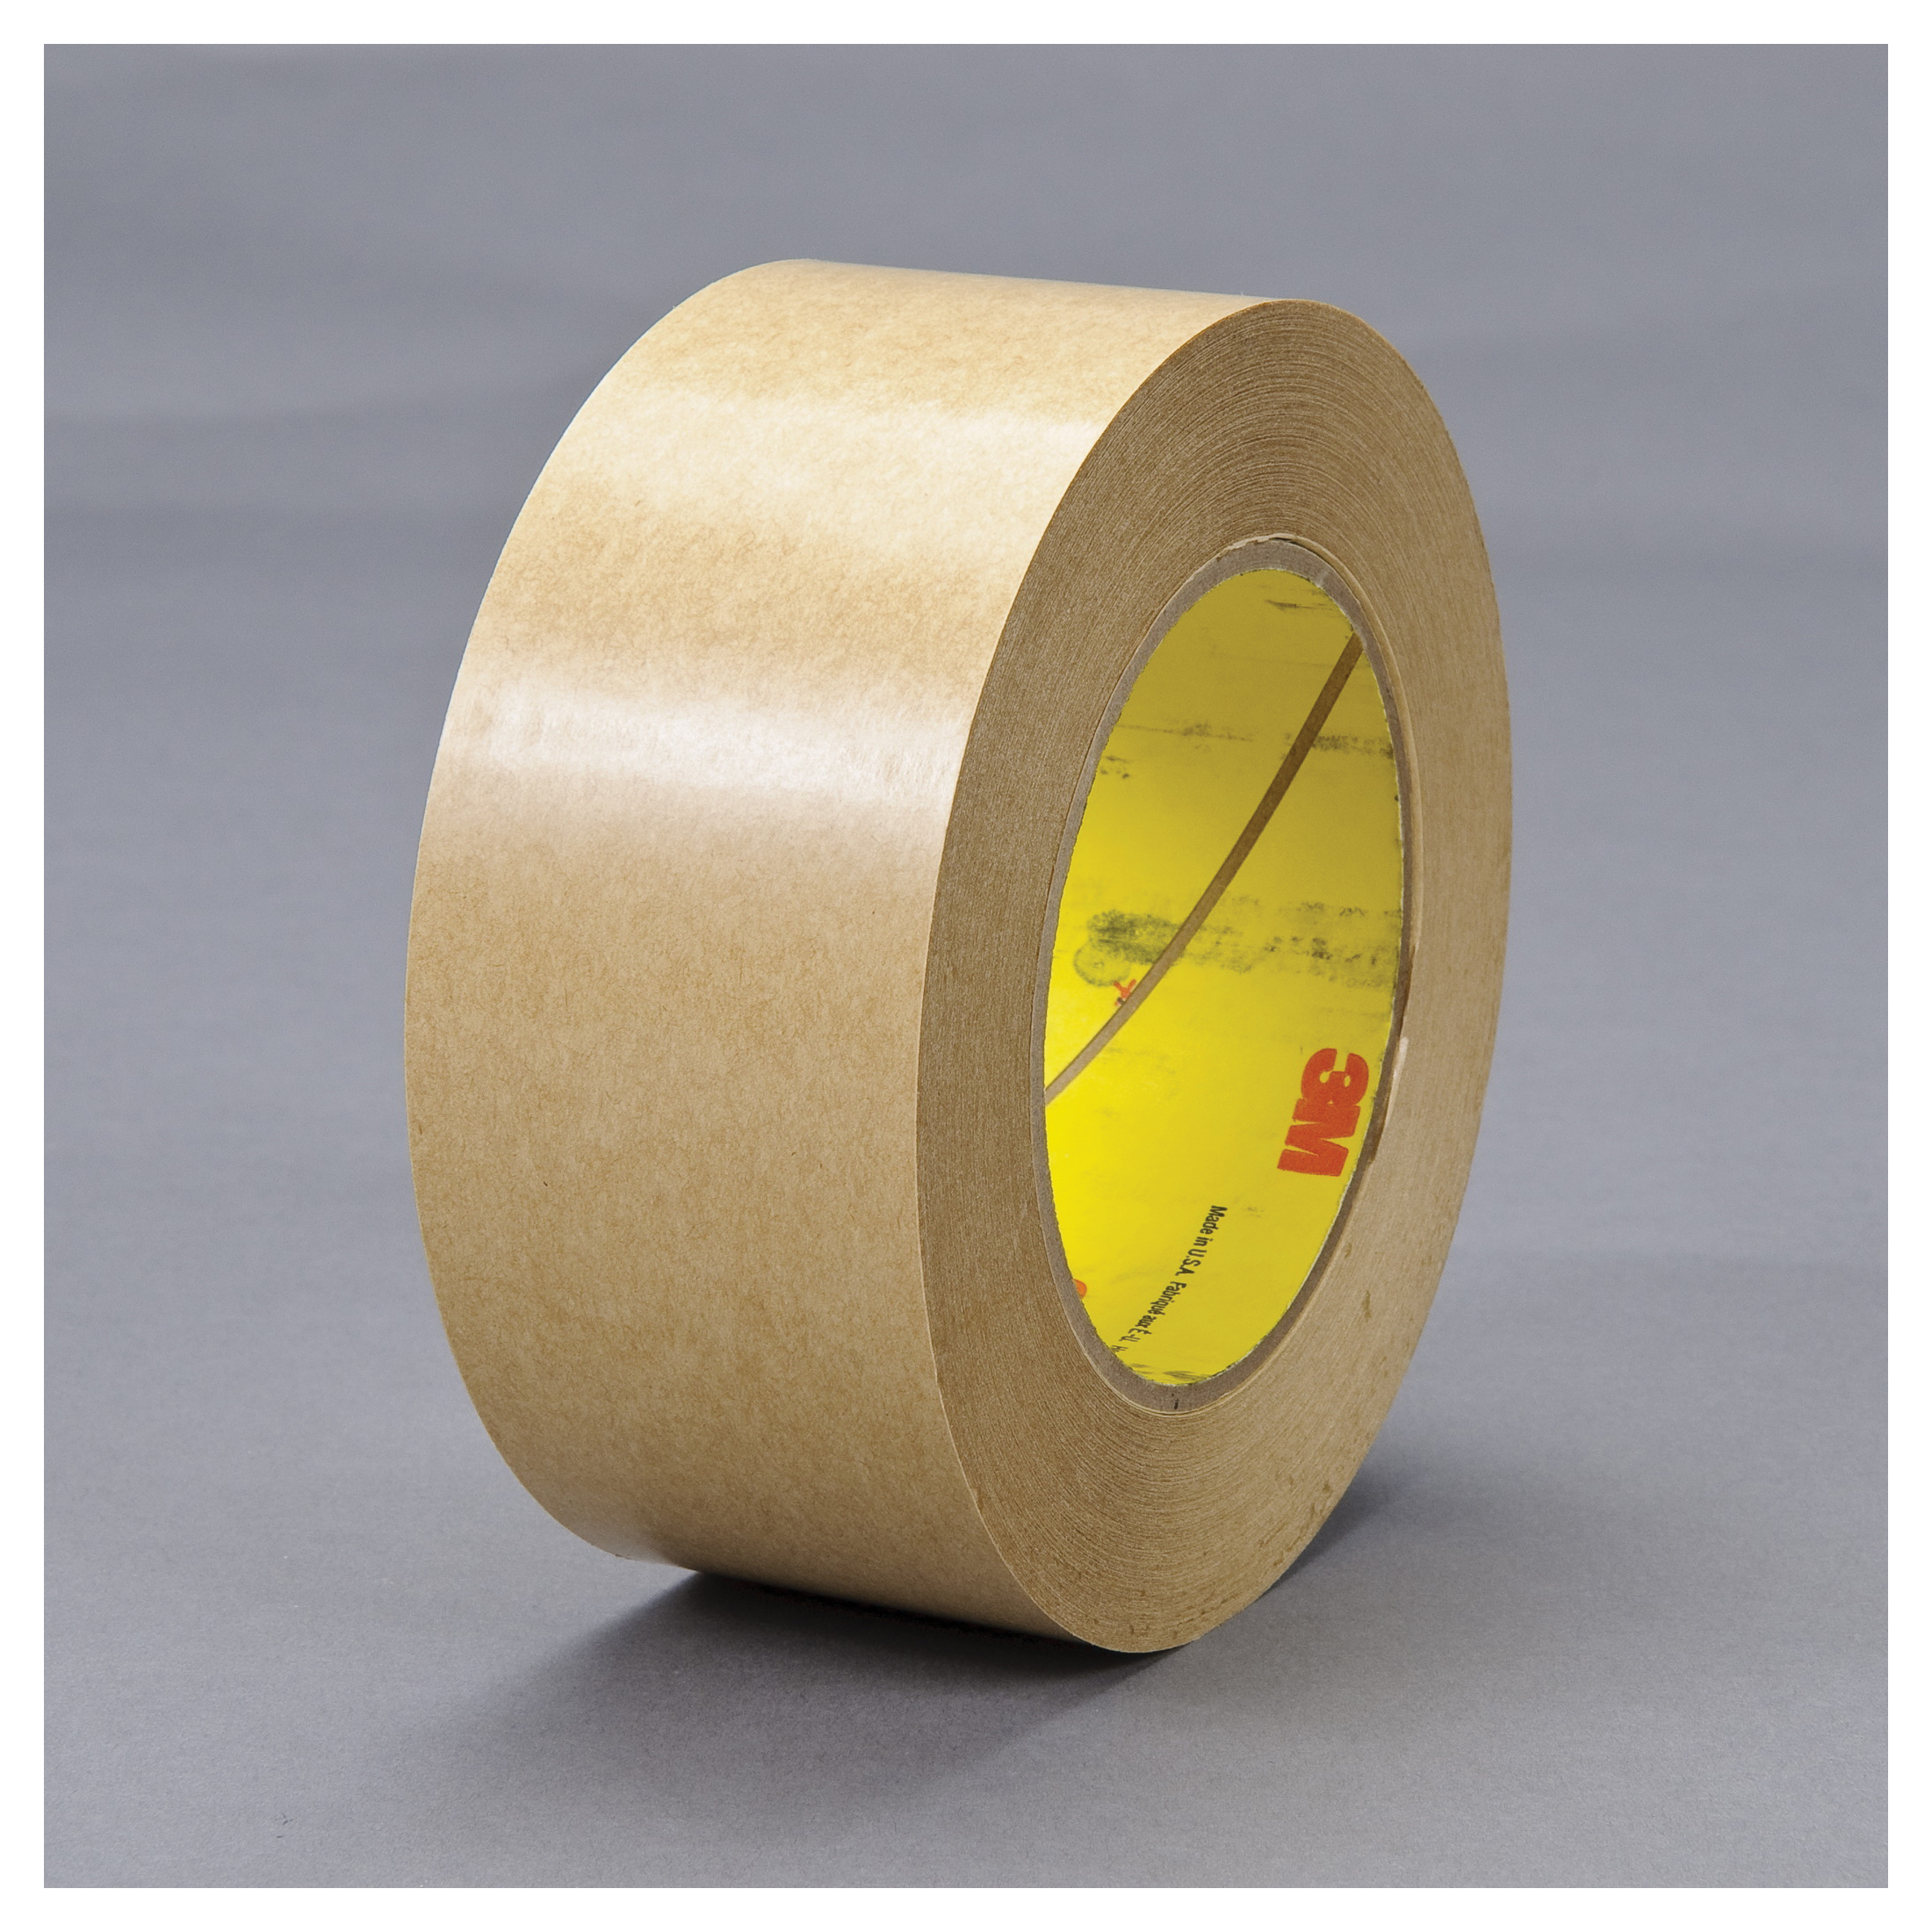 3M™ 021200-03351 Fibered General Purpose Adhesive Transfer Tape, 60 yd L x 6 in W, 2 mil THK, 2 mil 400 Acrylic Adhesive, Clear